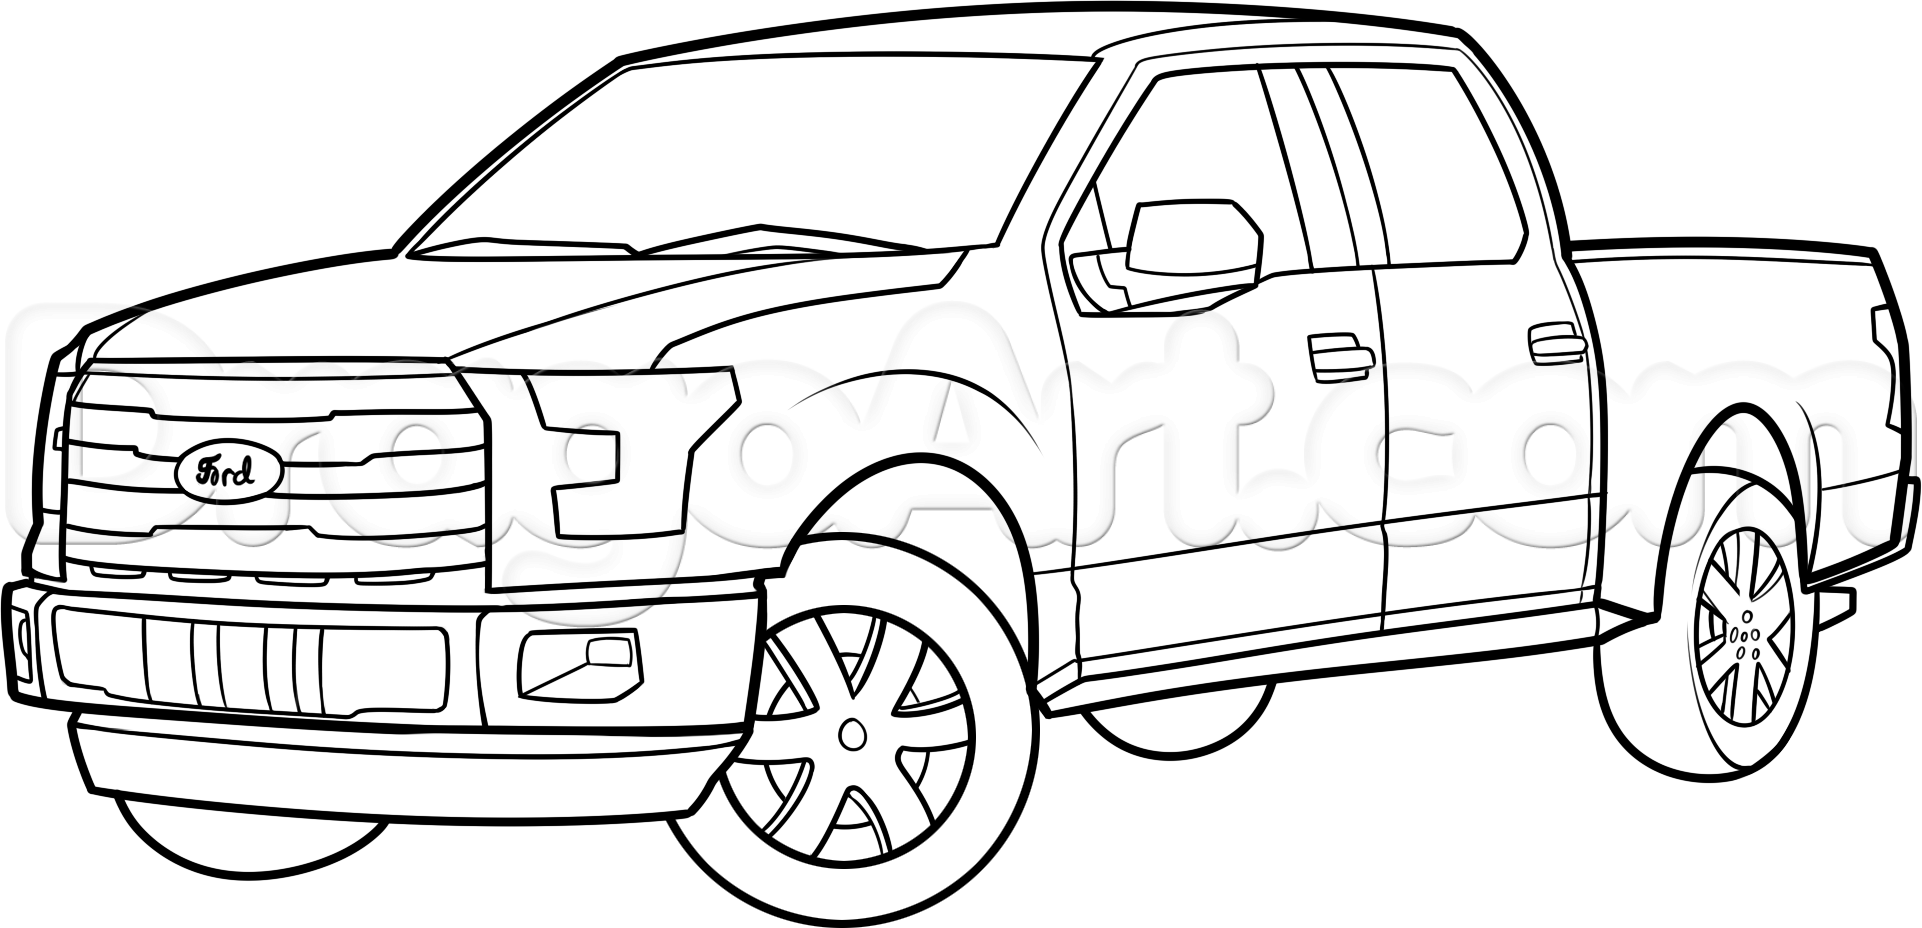 dodge ram truck coloring pages dodge ram coloring pages at getcoloringscom free dodge truck pages coloring ram